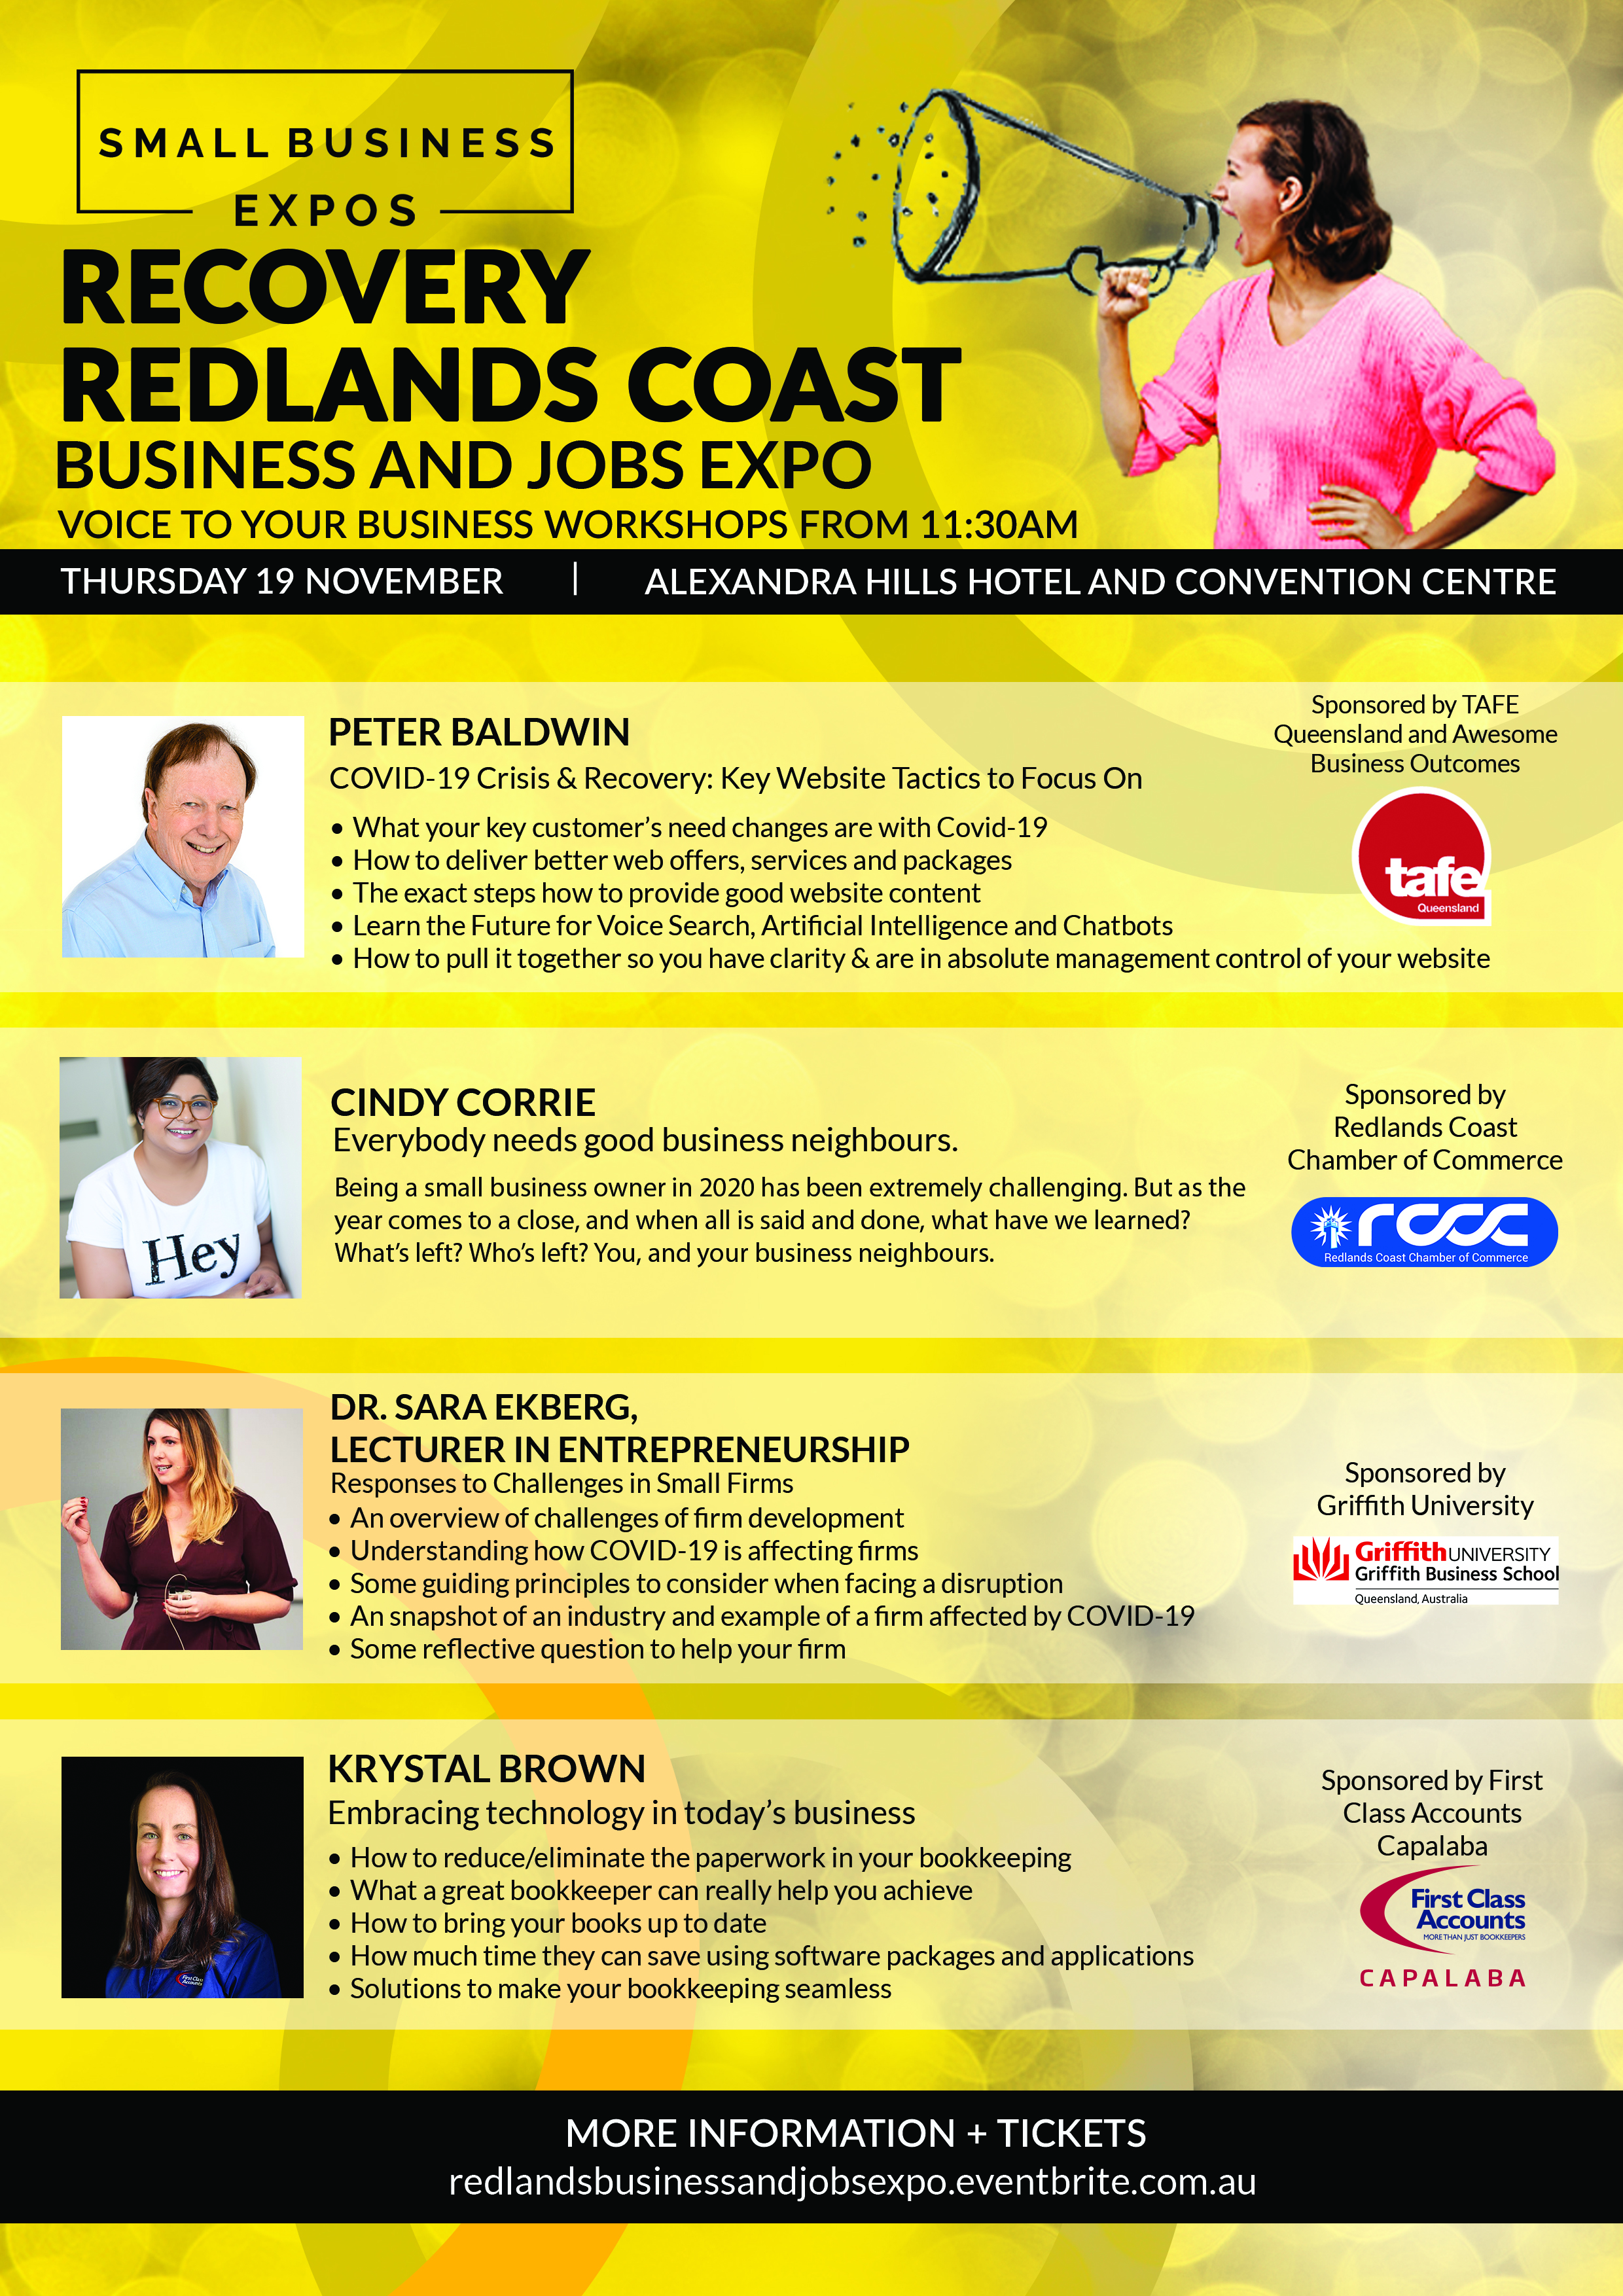 Business Expos | Brisbane | Gold Coast | Small Business Expos | Redlands Coast Voice V2